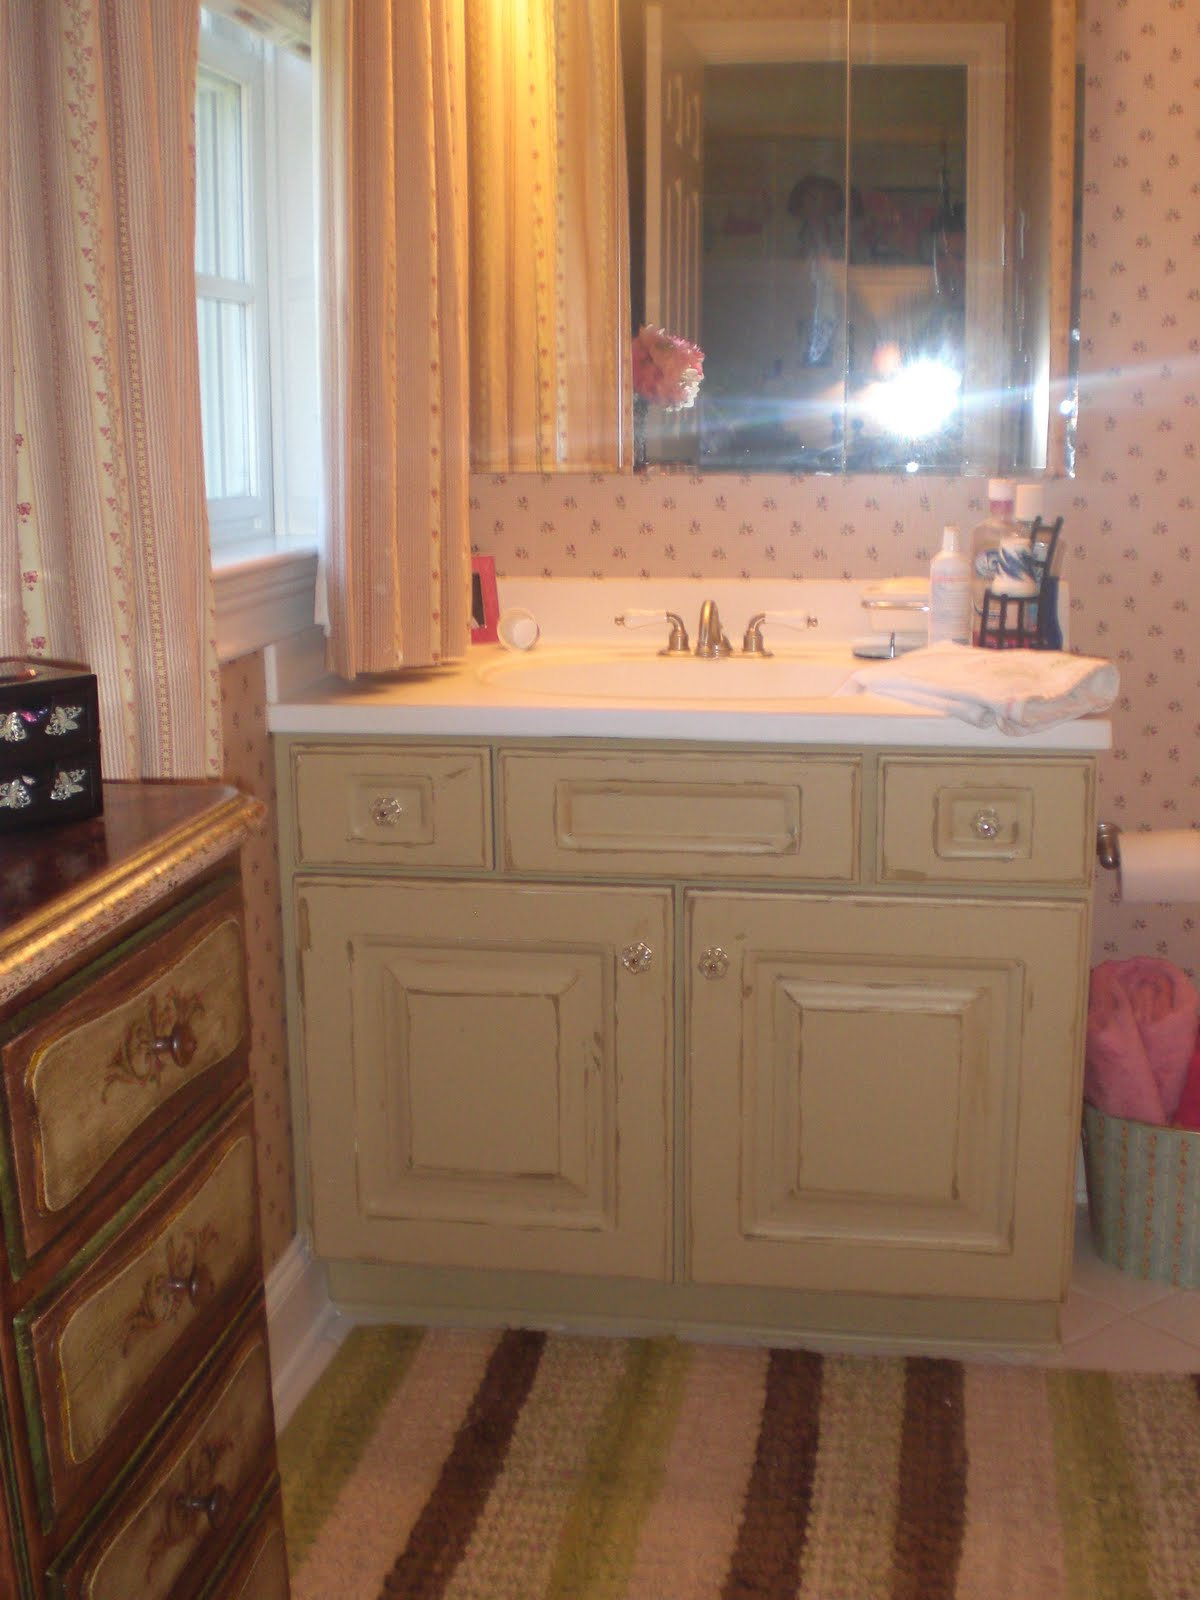 Painted Bathroom Vanity How To Upgrade A Builder 39s Grade Vanity The Painted Home